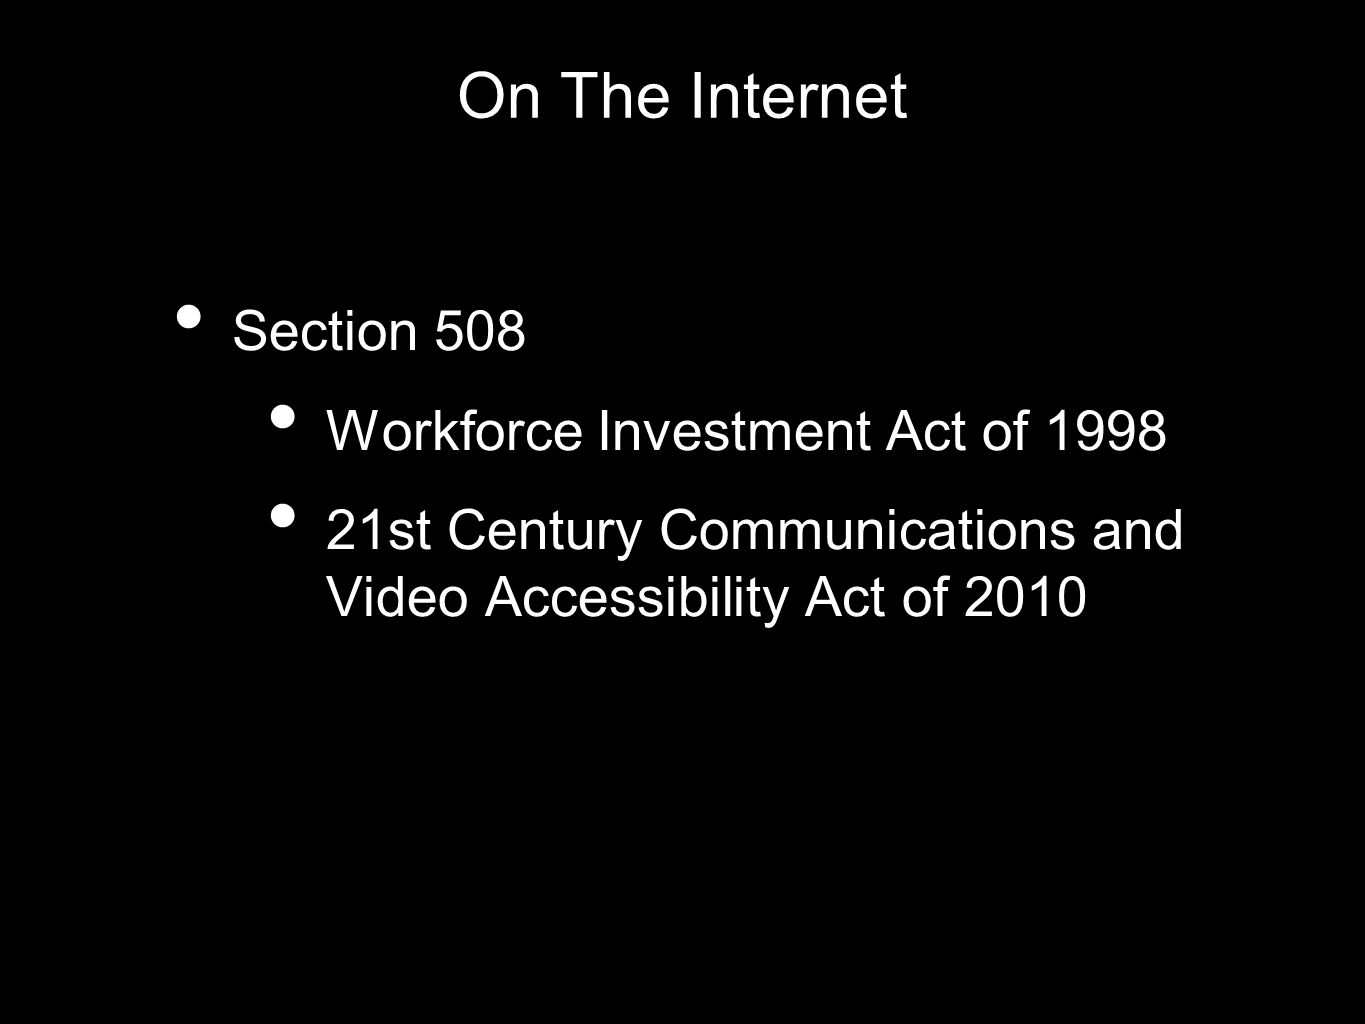 On The Internet Section 508 Workforce Investment Act of 1998 21st Century Communications and Video Accessibility Act of 2010